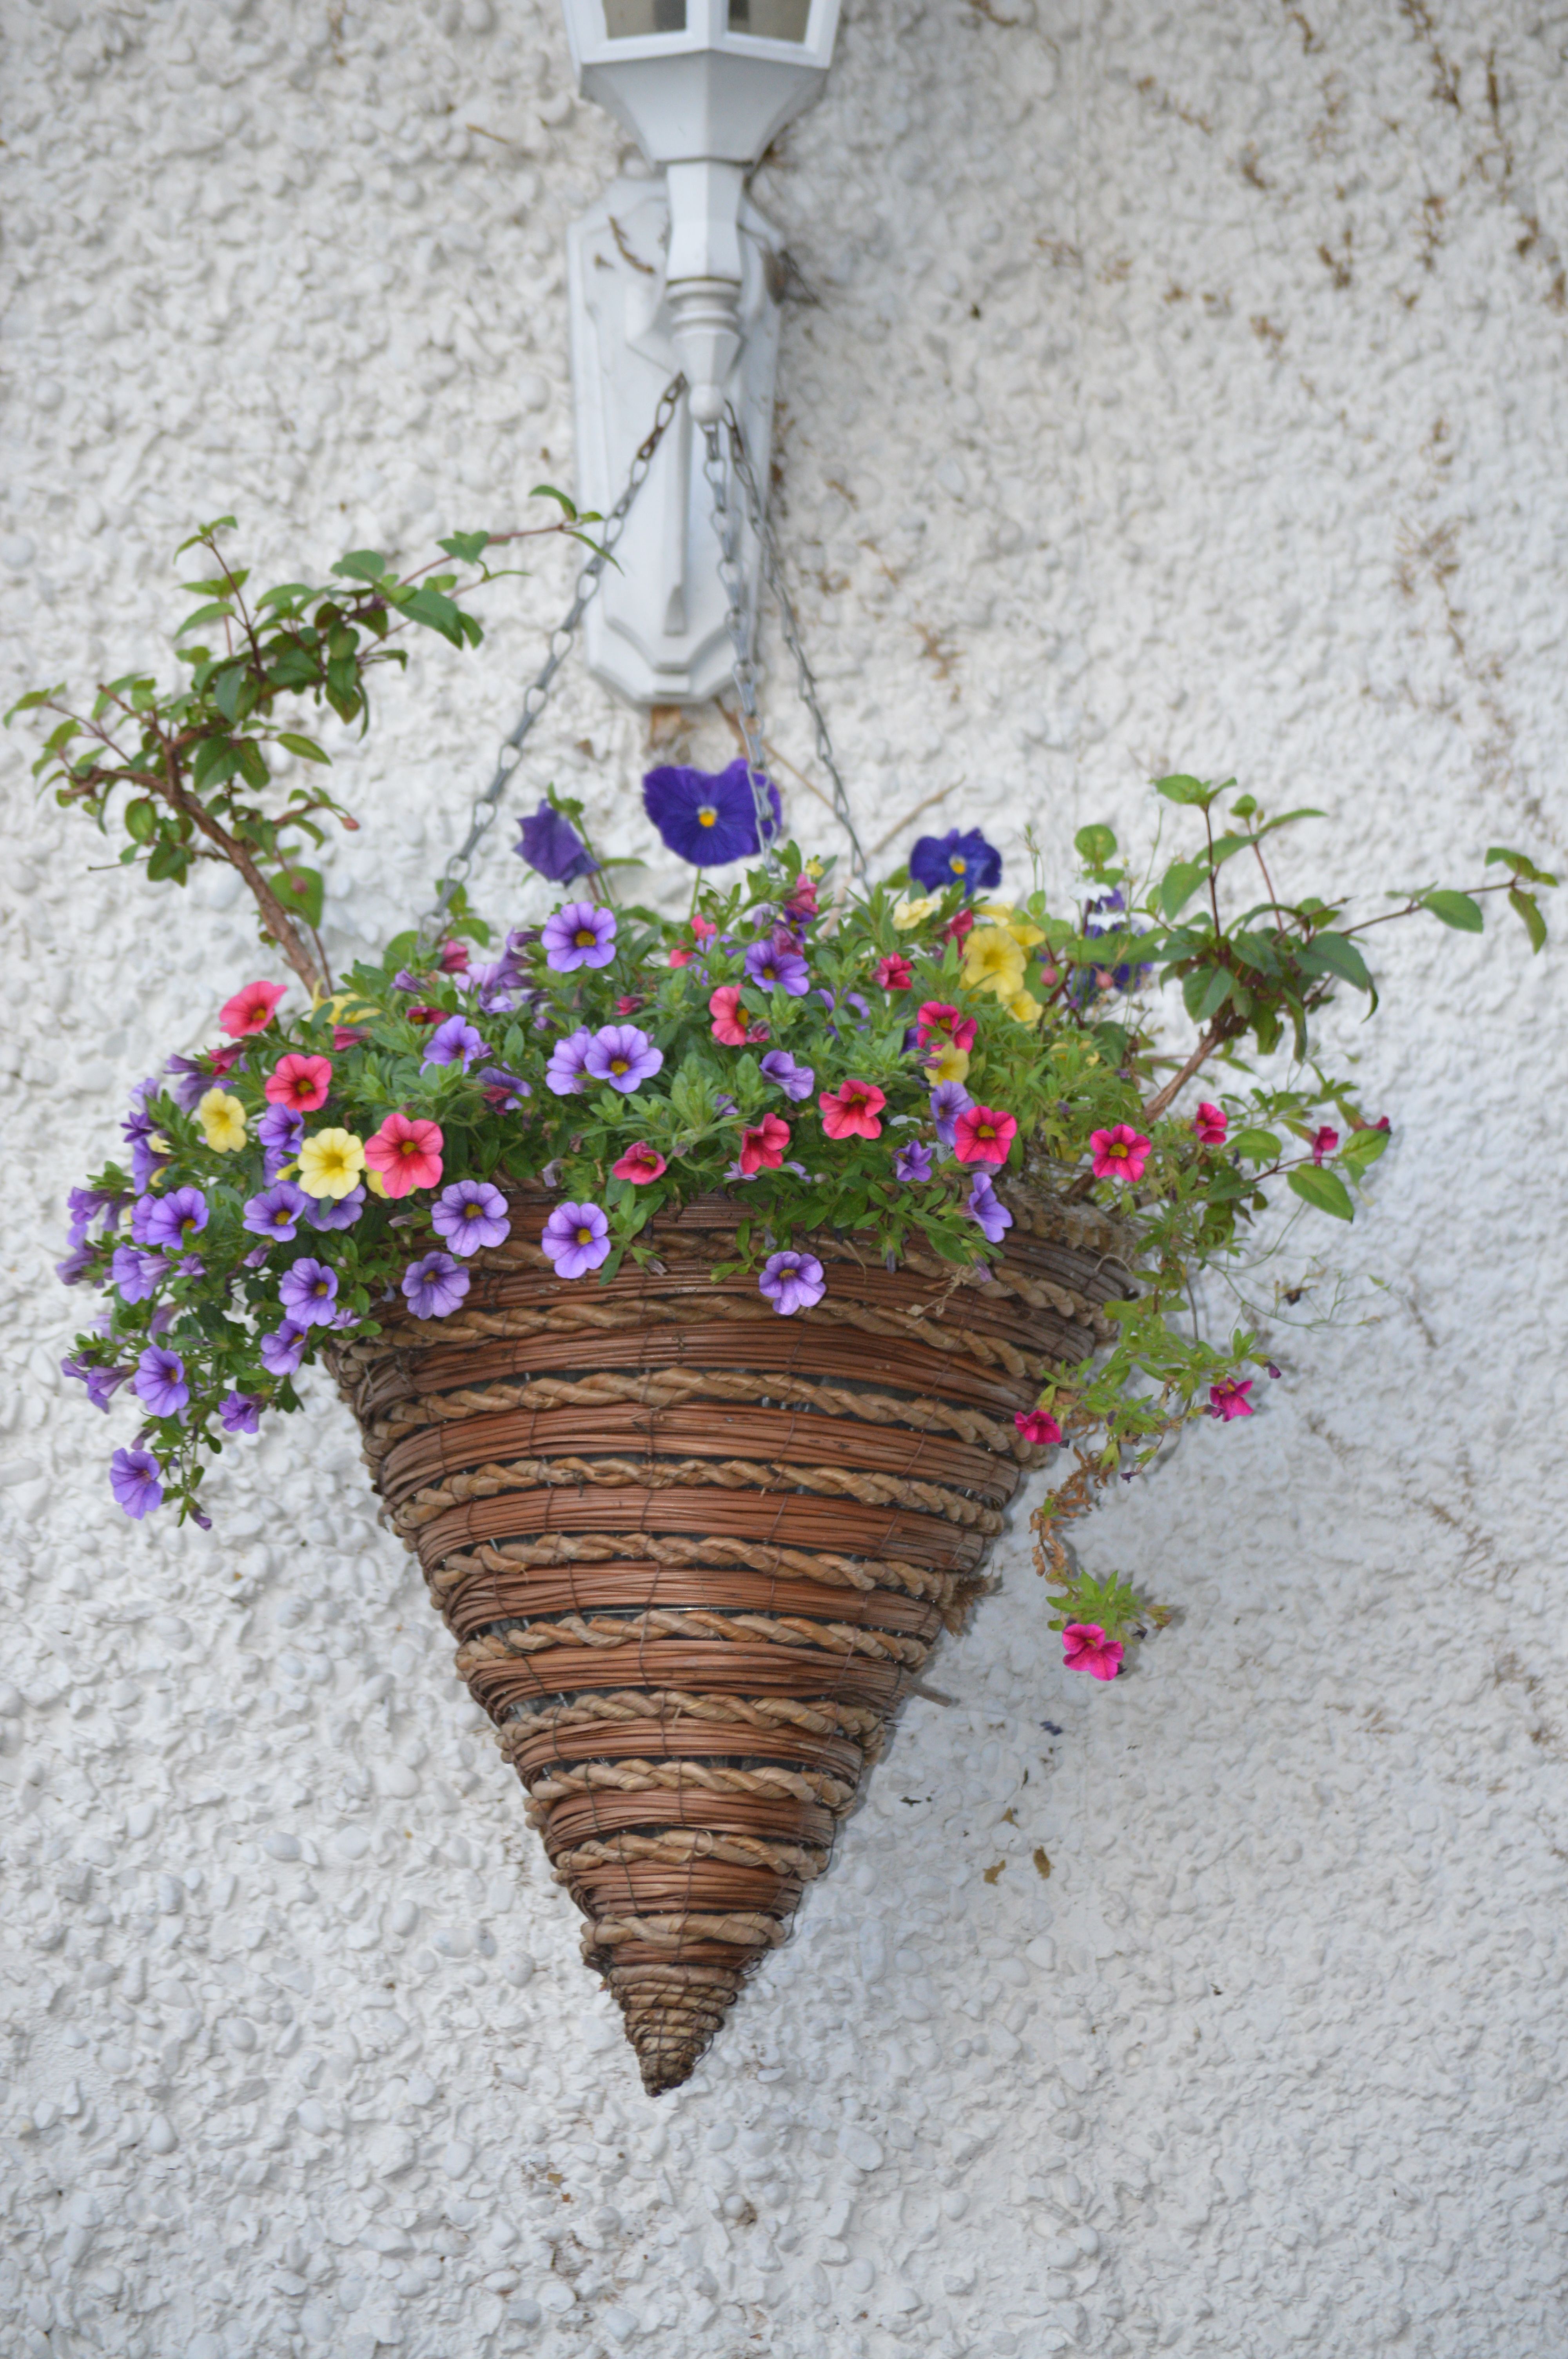 Hanging Flower Pot Flowers Cone Shaped Hanging Flower Pot With Small Flowers